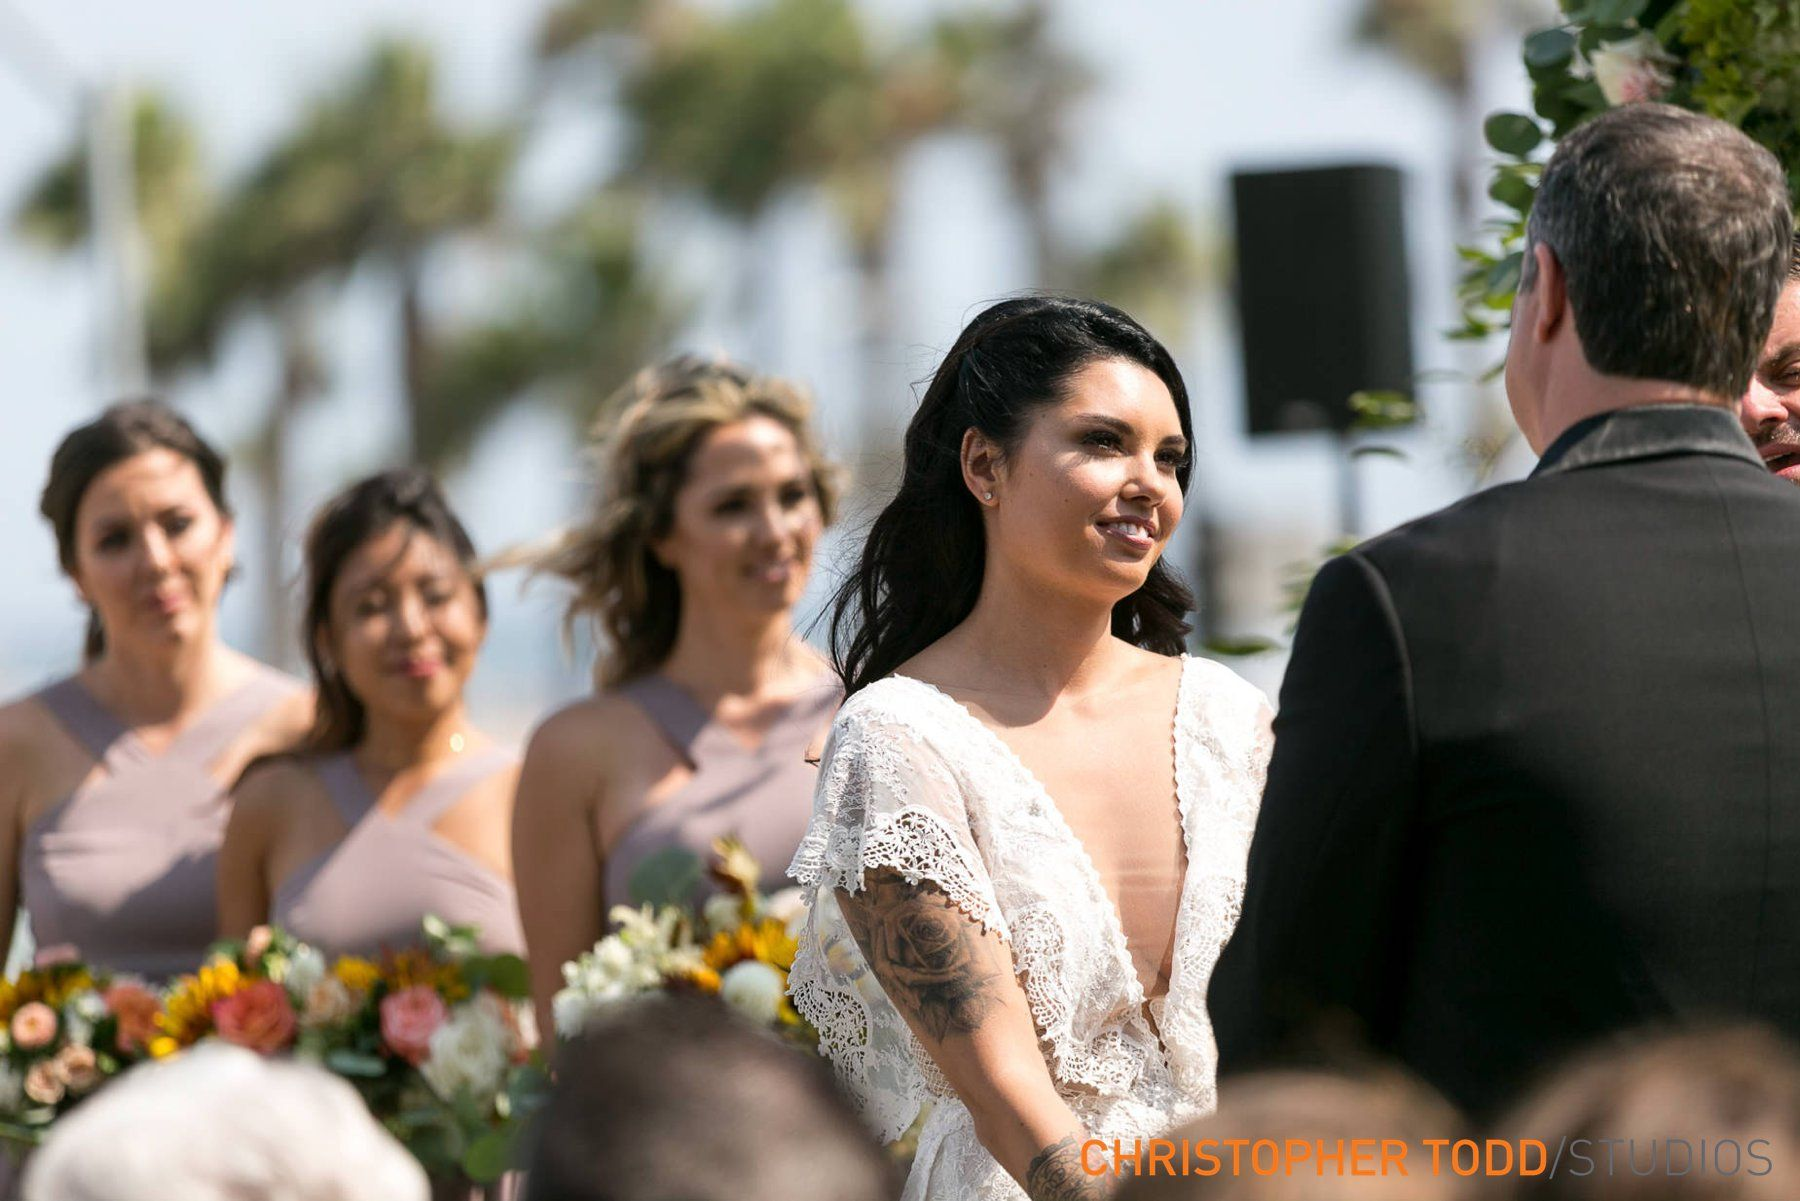 Pasea Hotel Huntington Beach Wedding is part of Hotel lawn Wedding Venues - Pasea Hotel Huntington Beach wedding venue is an oceanfront resort  Outdoor ceremonies, cocktail hour on the lawn, reception in the ballroom